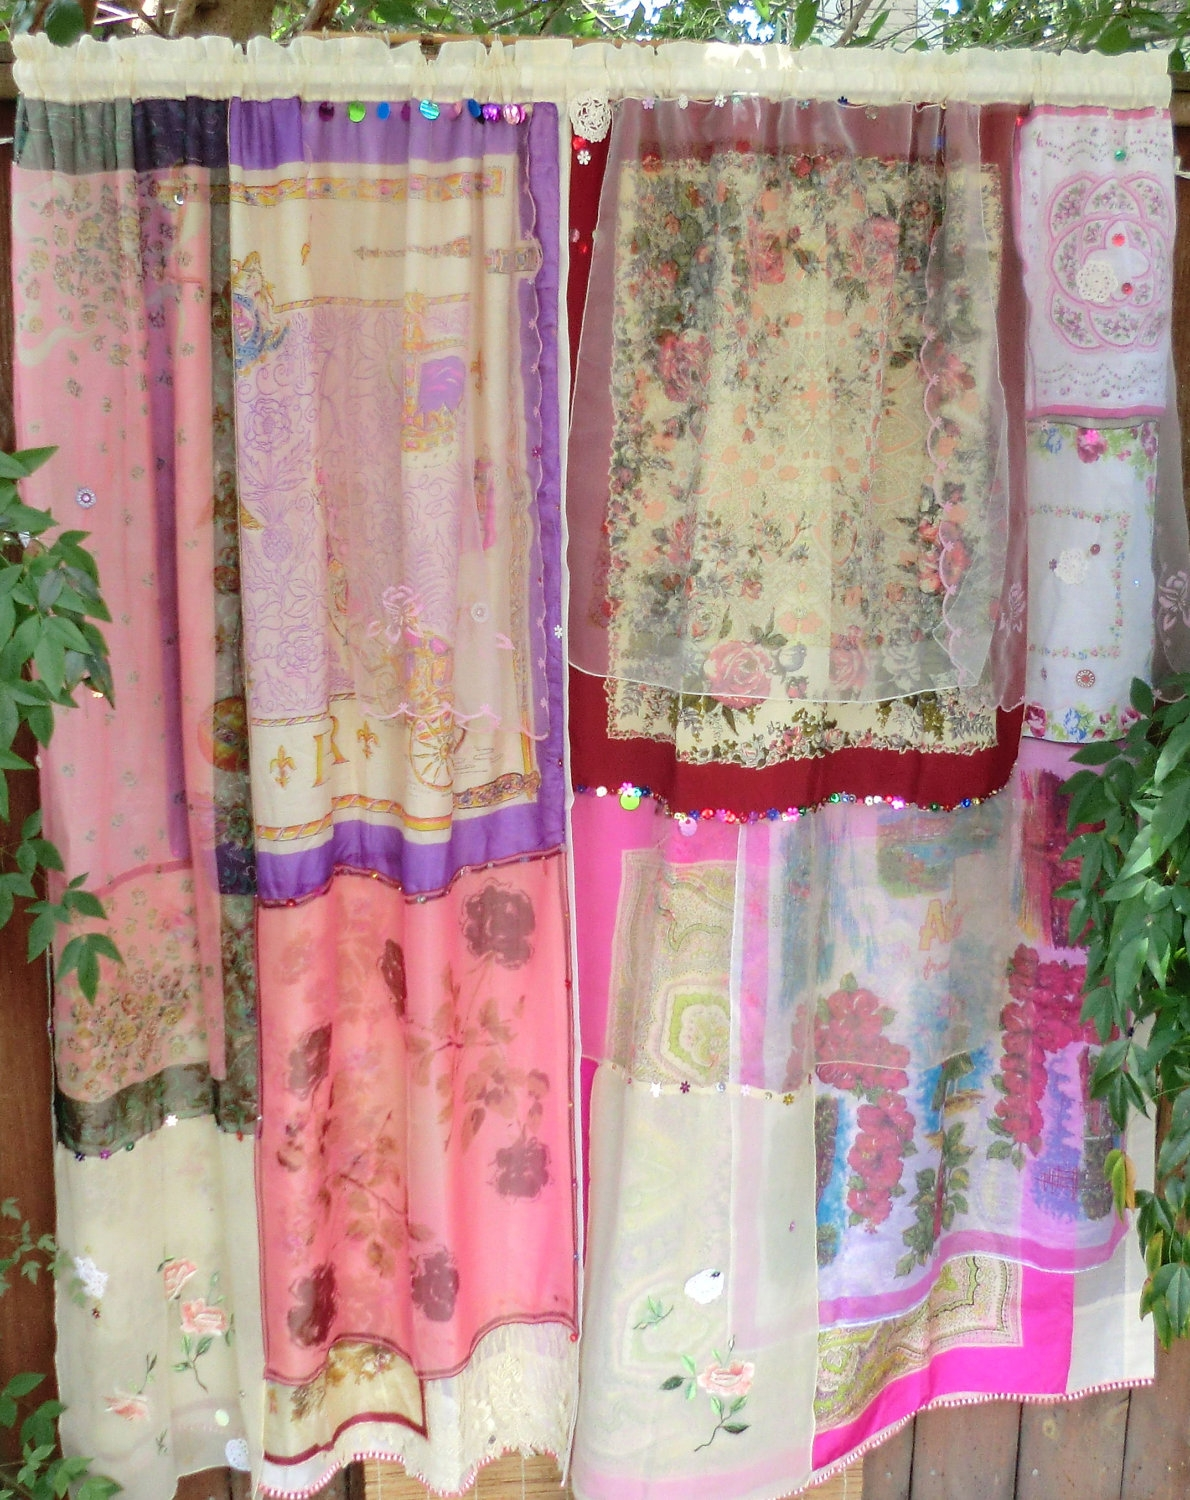 In Your Dreams Handmade Hippie Curtains With Hand Made Curtains (Image 9 of 15)